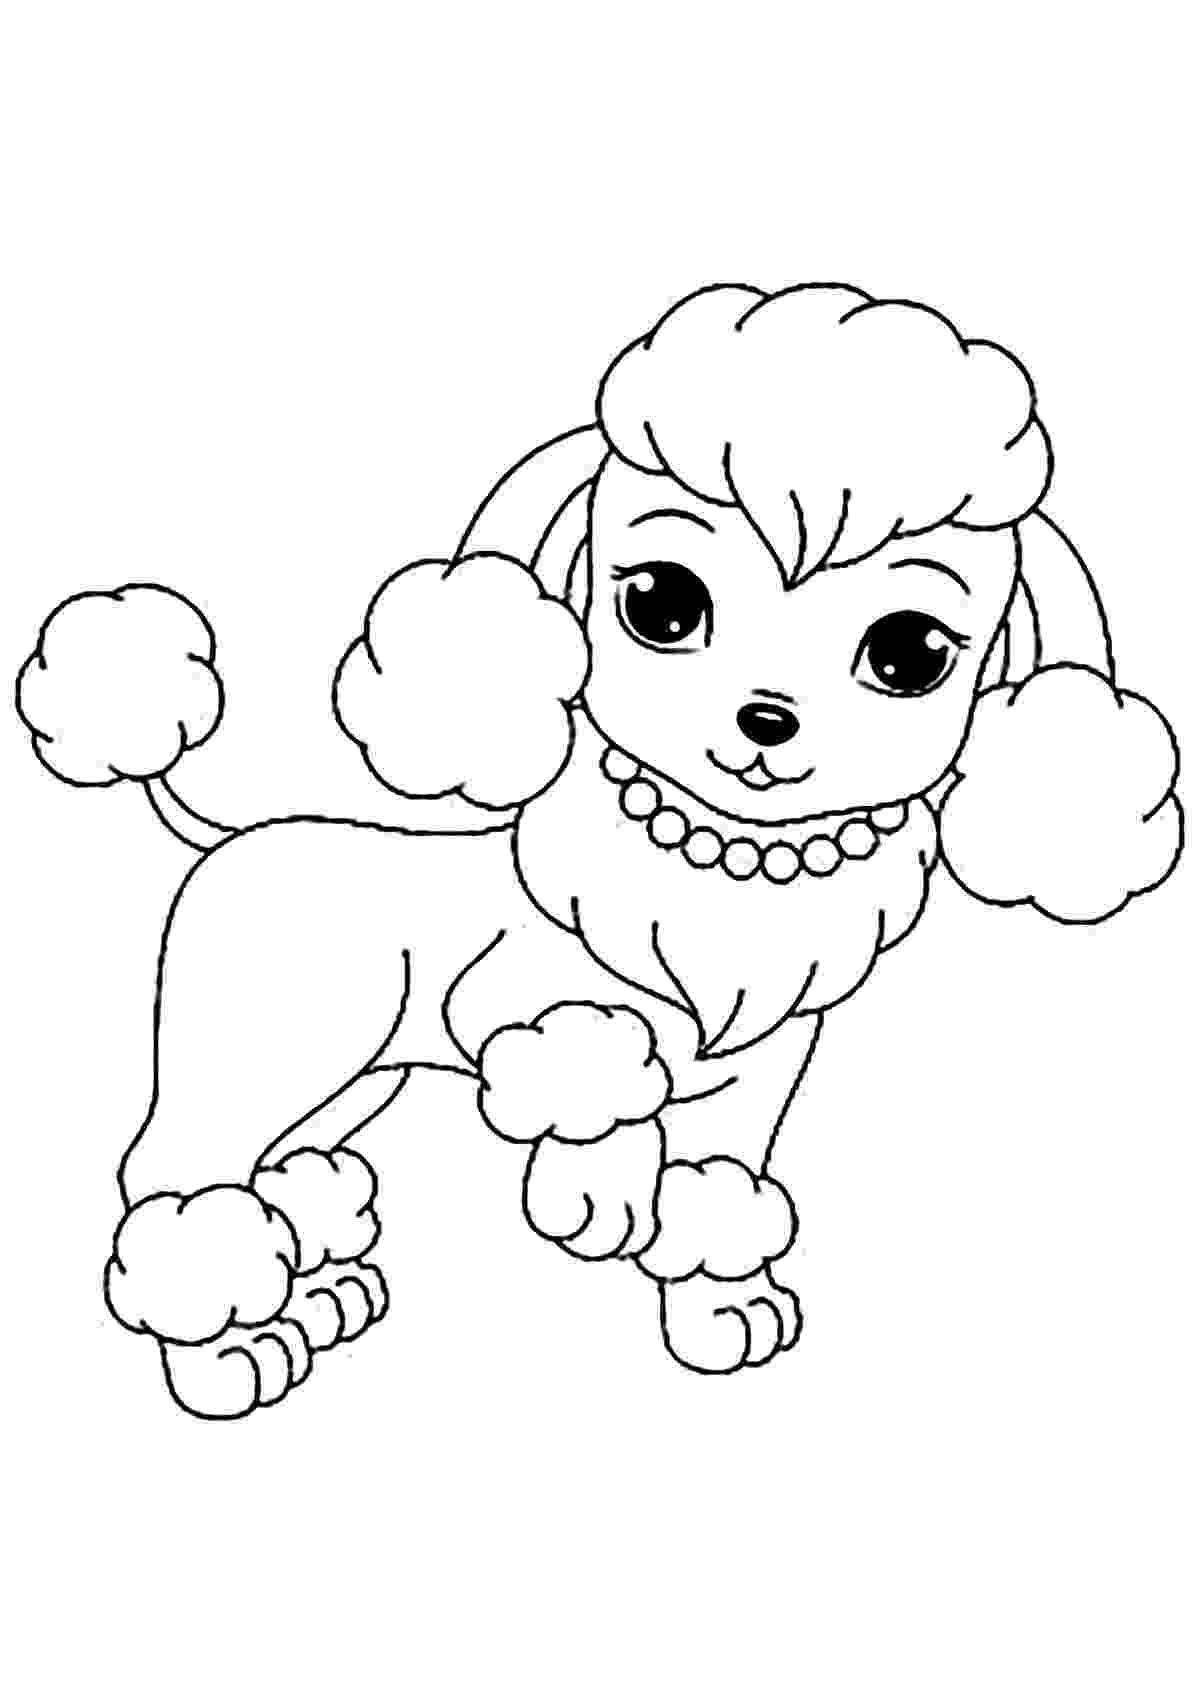 coloring pictures dogs dog free to color for children cute female dog dogs coloring dogs pictures